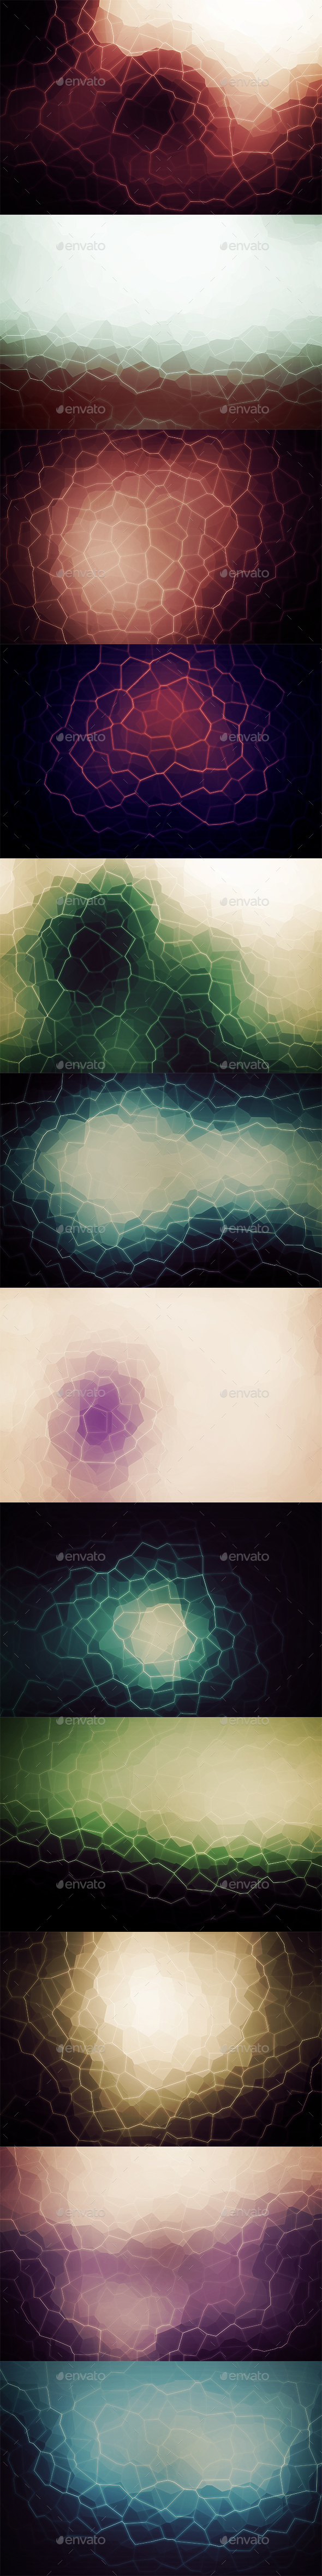 Crystallized Backgrounds Vol17 - Abstract Backgrounds